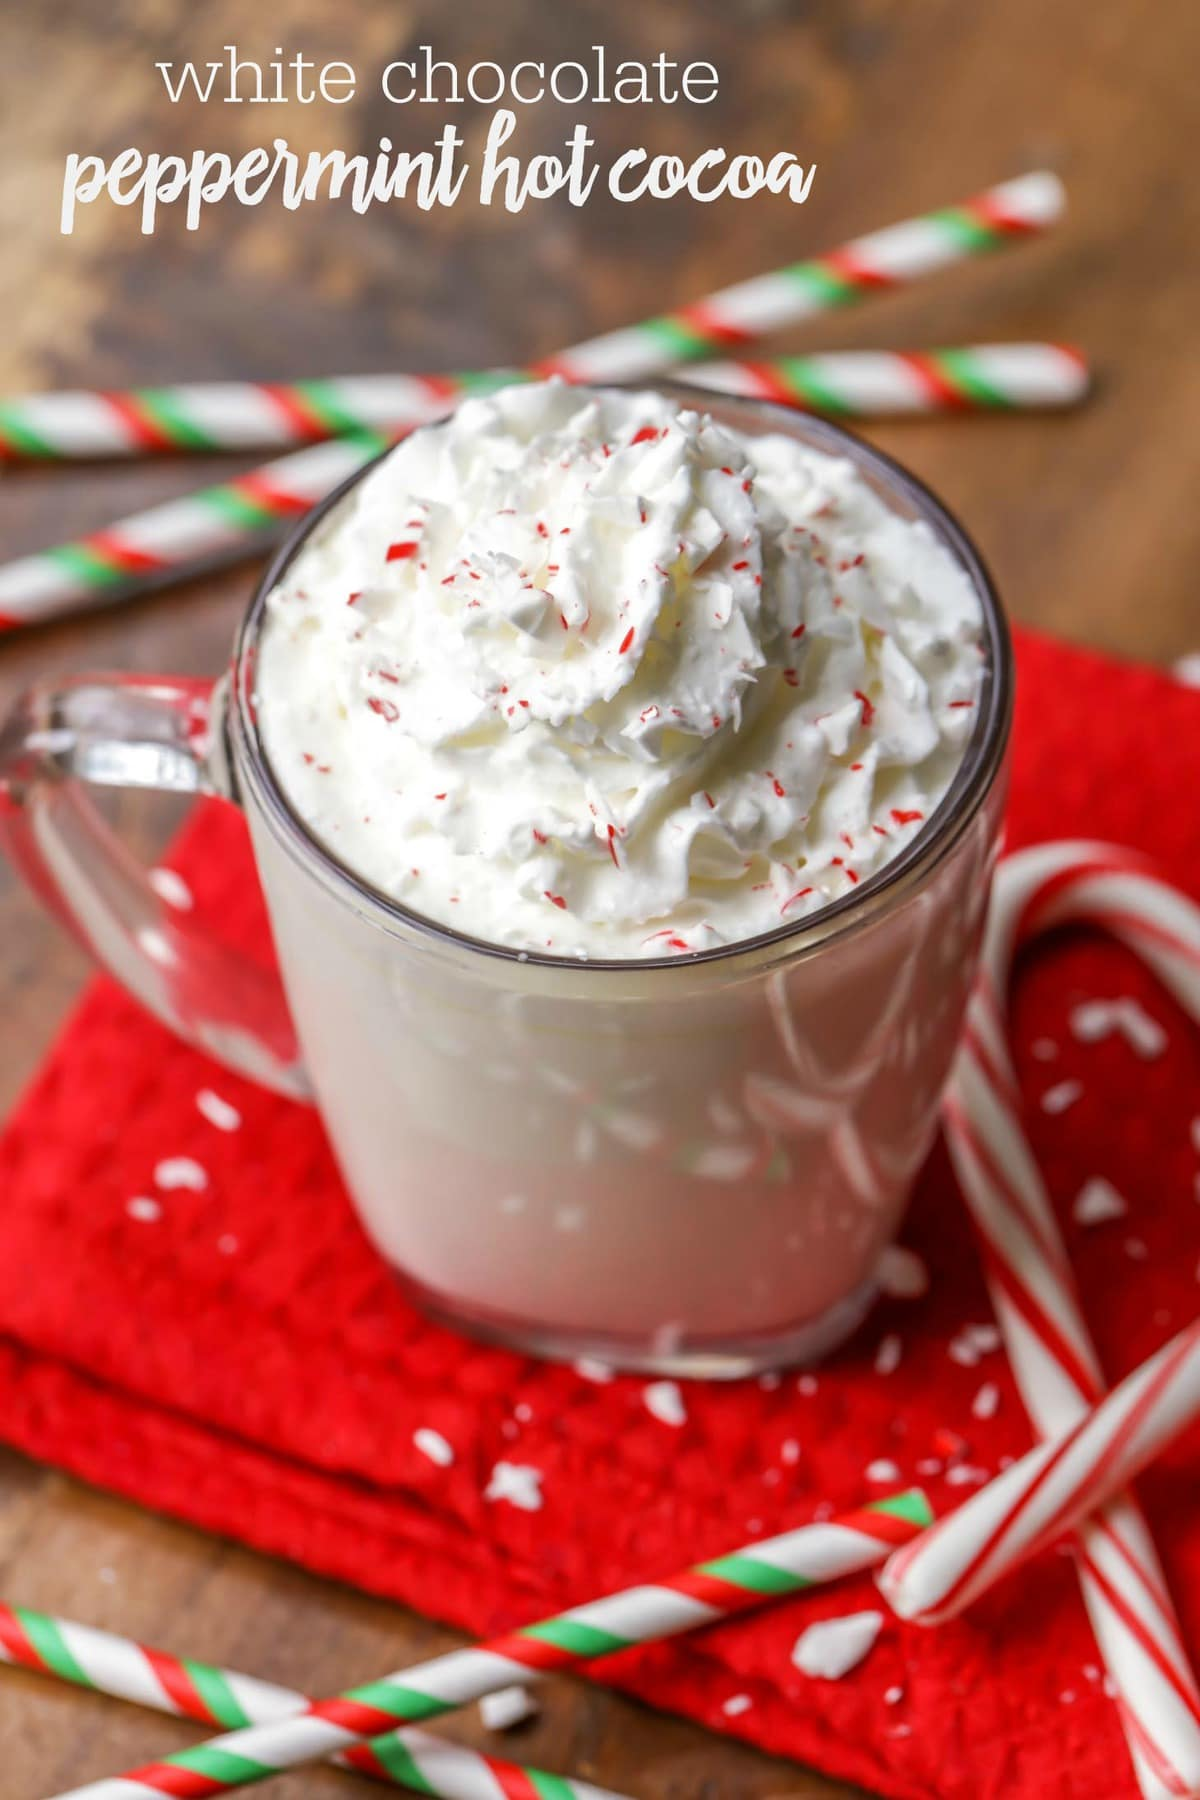 Rich and creamy White Chocolate Peppermint Hot cocoa recipe - one of the best drink recipes you'll try this holiday season!